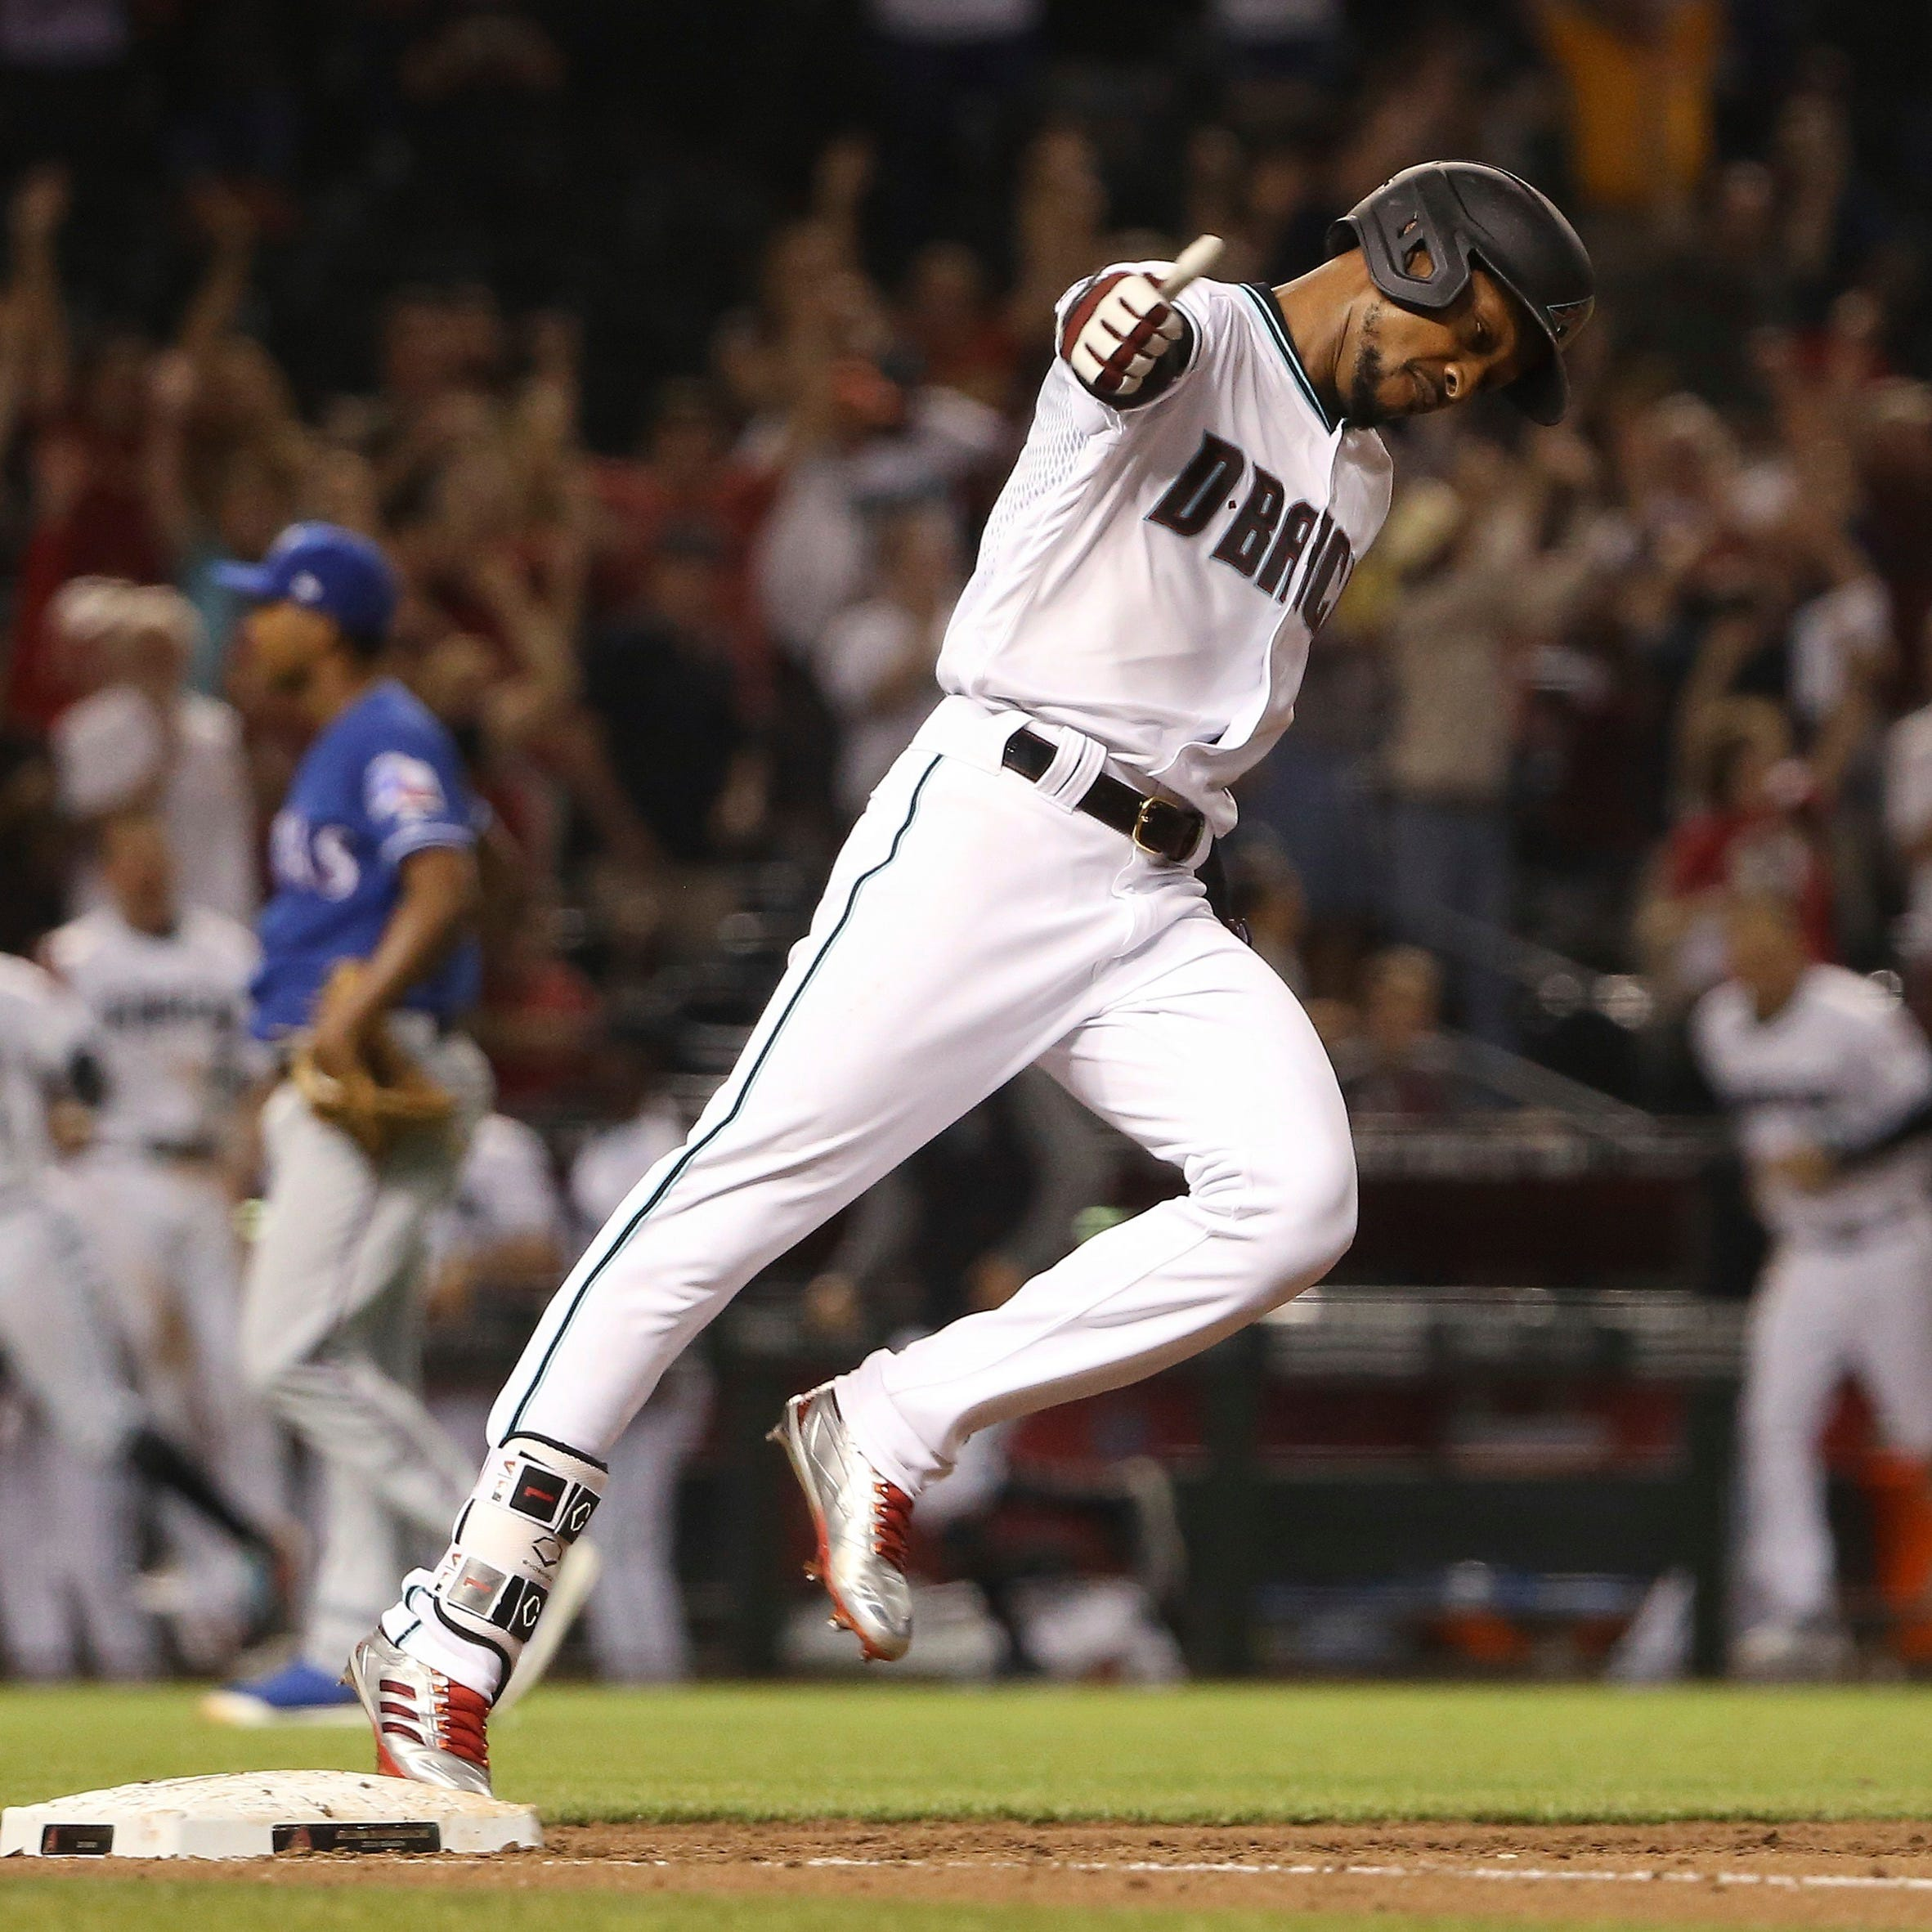 Jarrod Dyson lifts Diamondbacks over Rangers with walk-off home run